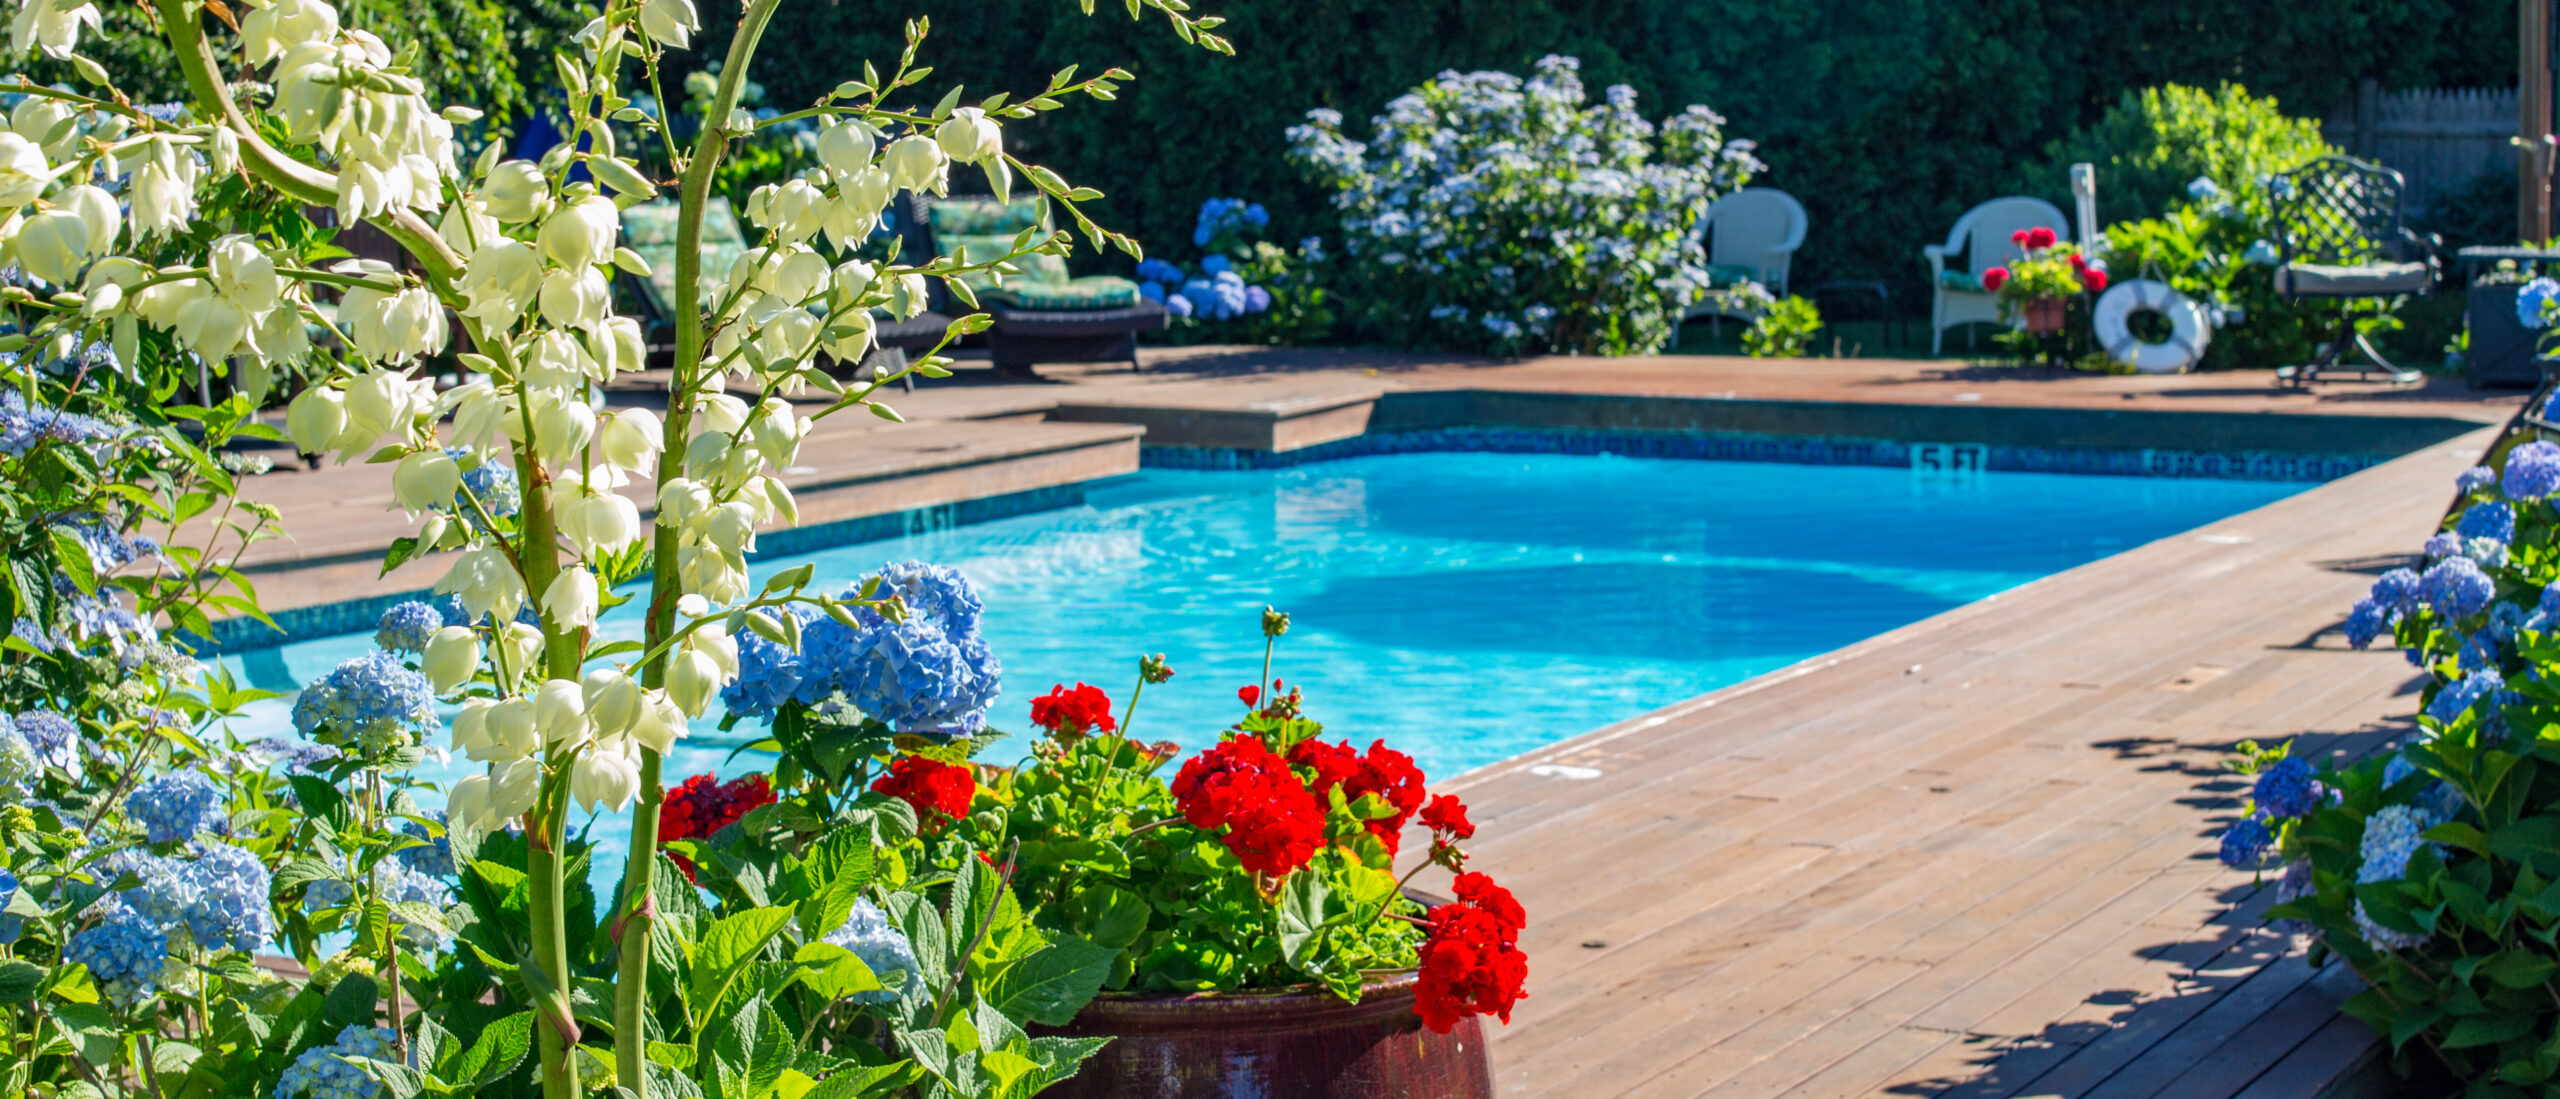 Flowers surrounding the pool and deck.